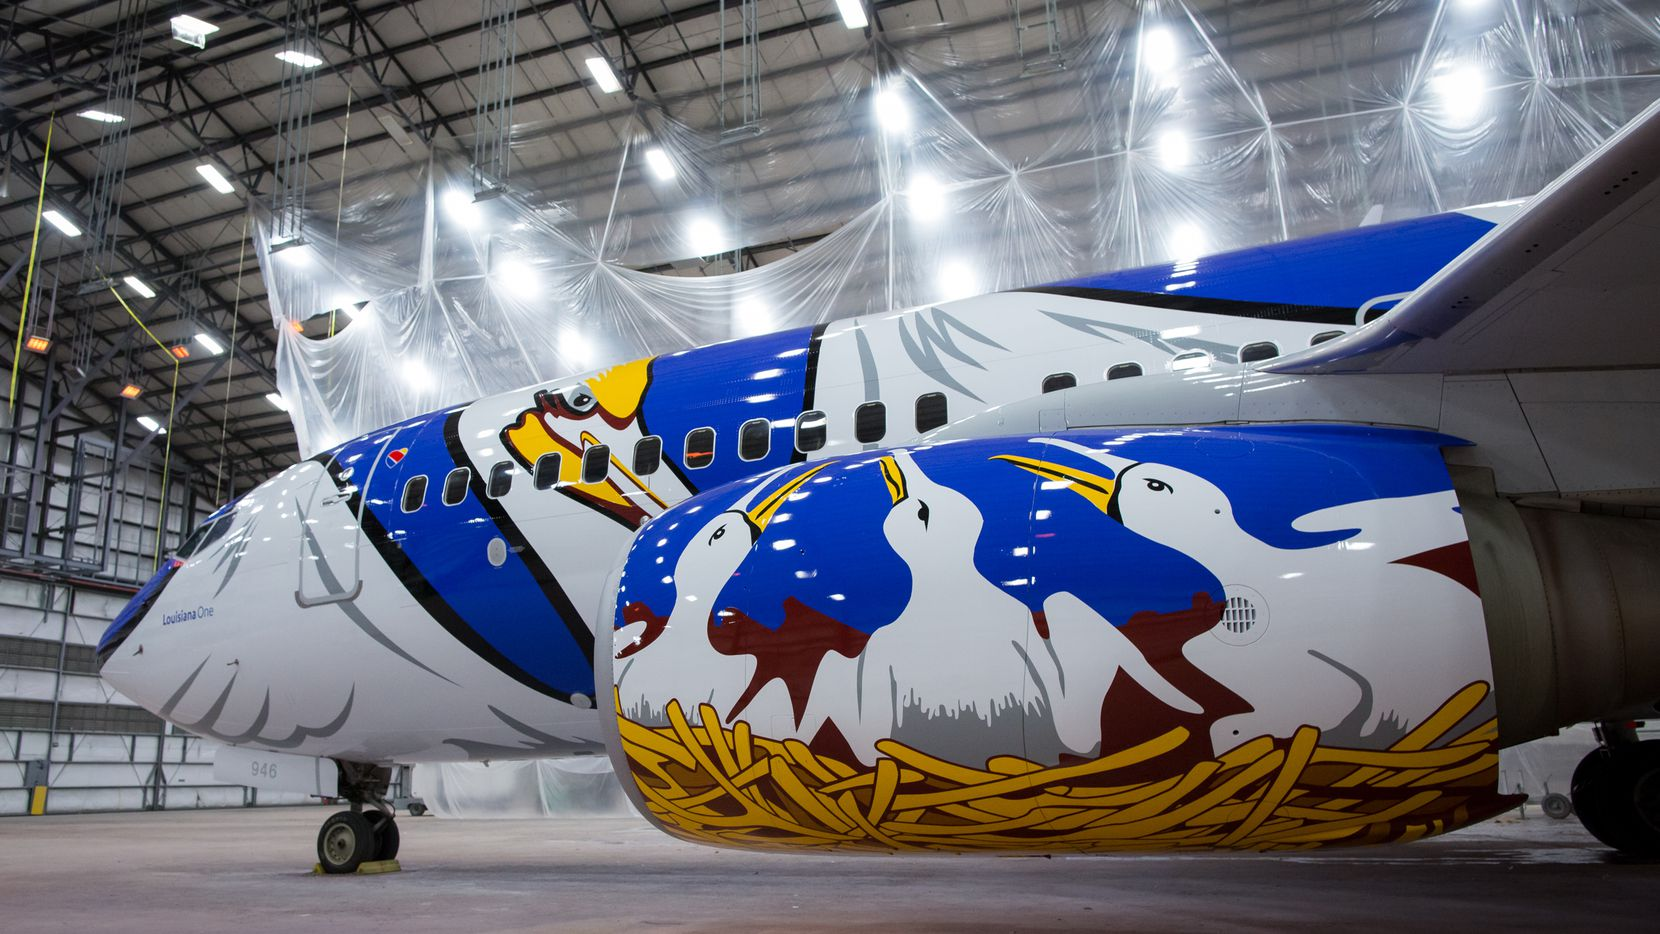 Southwest Airlines: Introducing Louisiana One